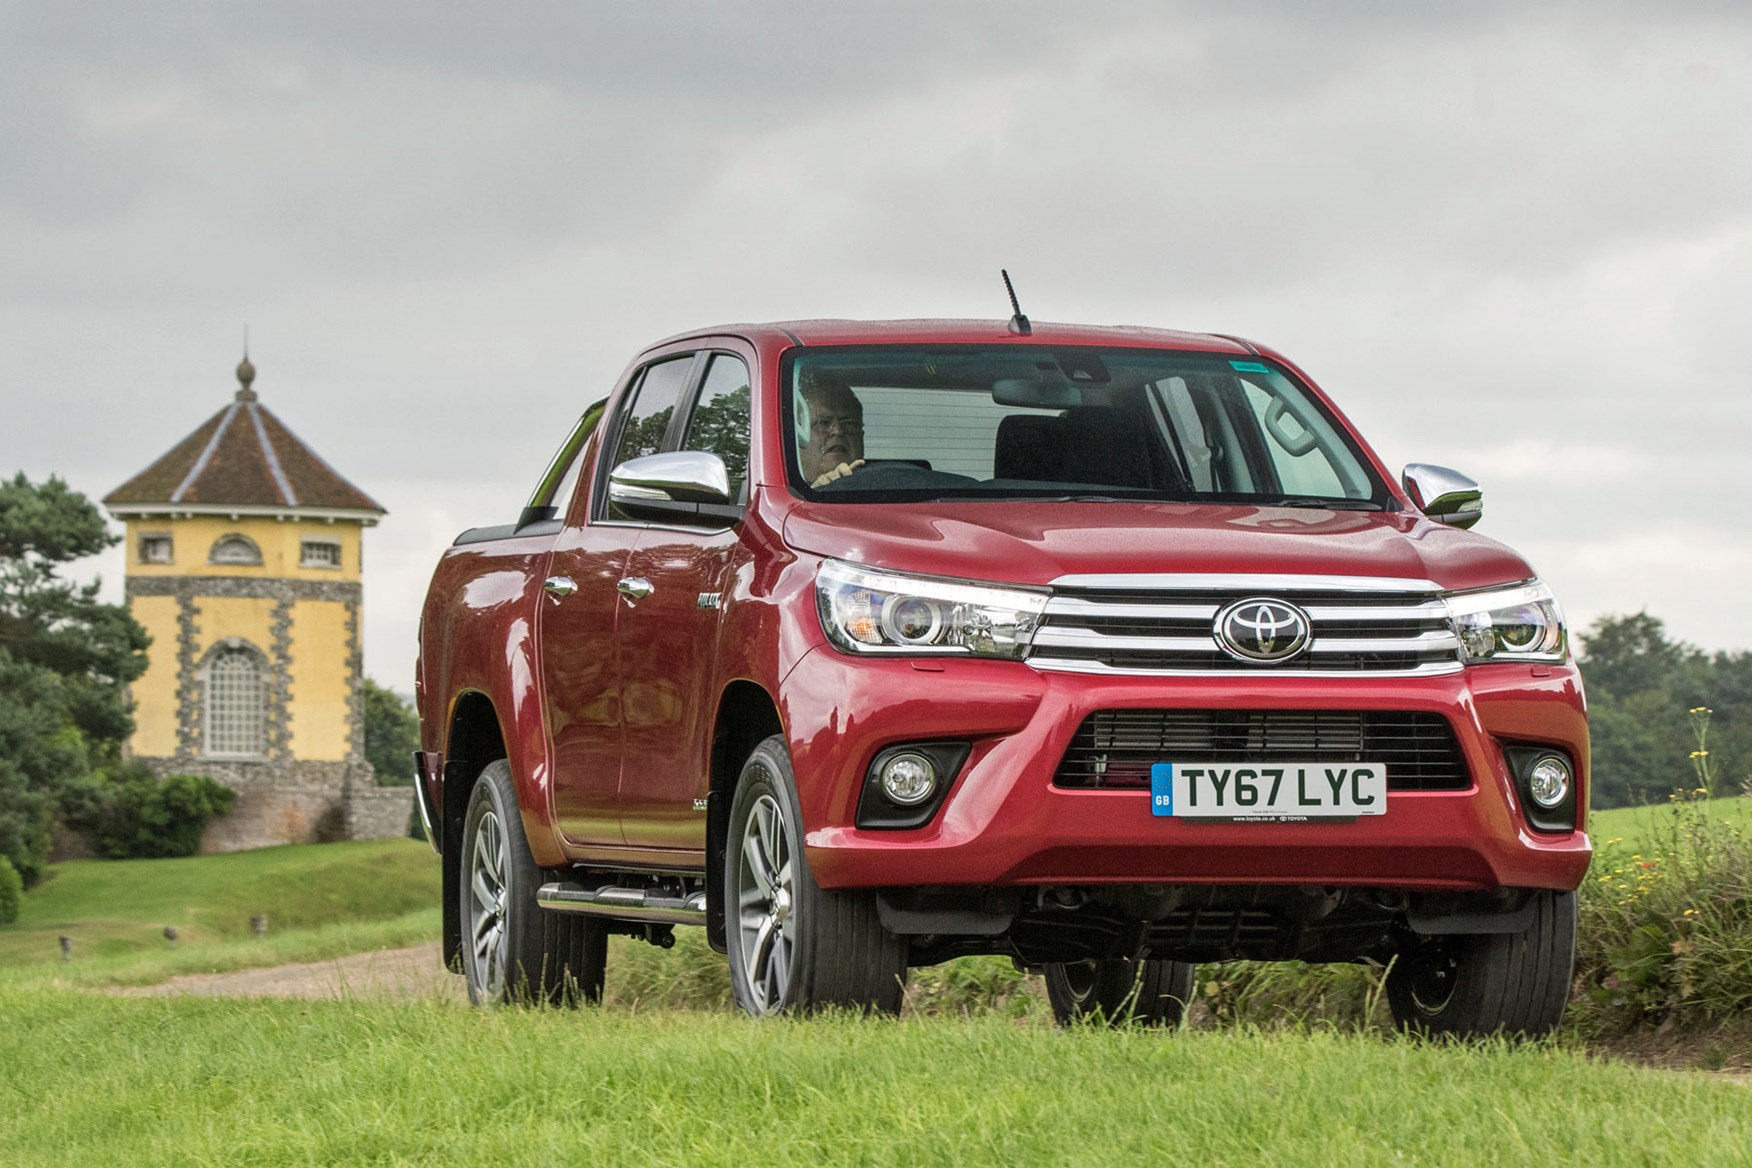 Toyota Hilux review - front view, driving, red, Invincible